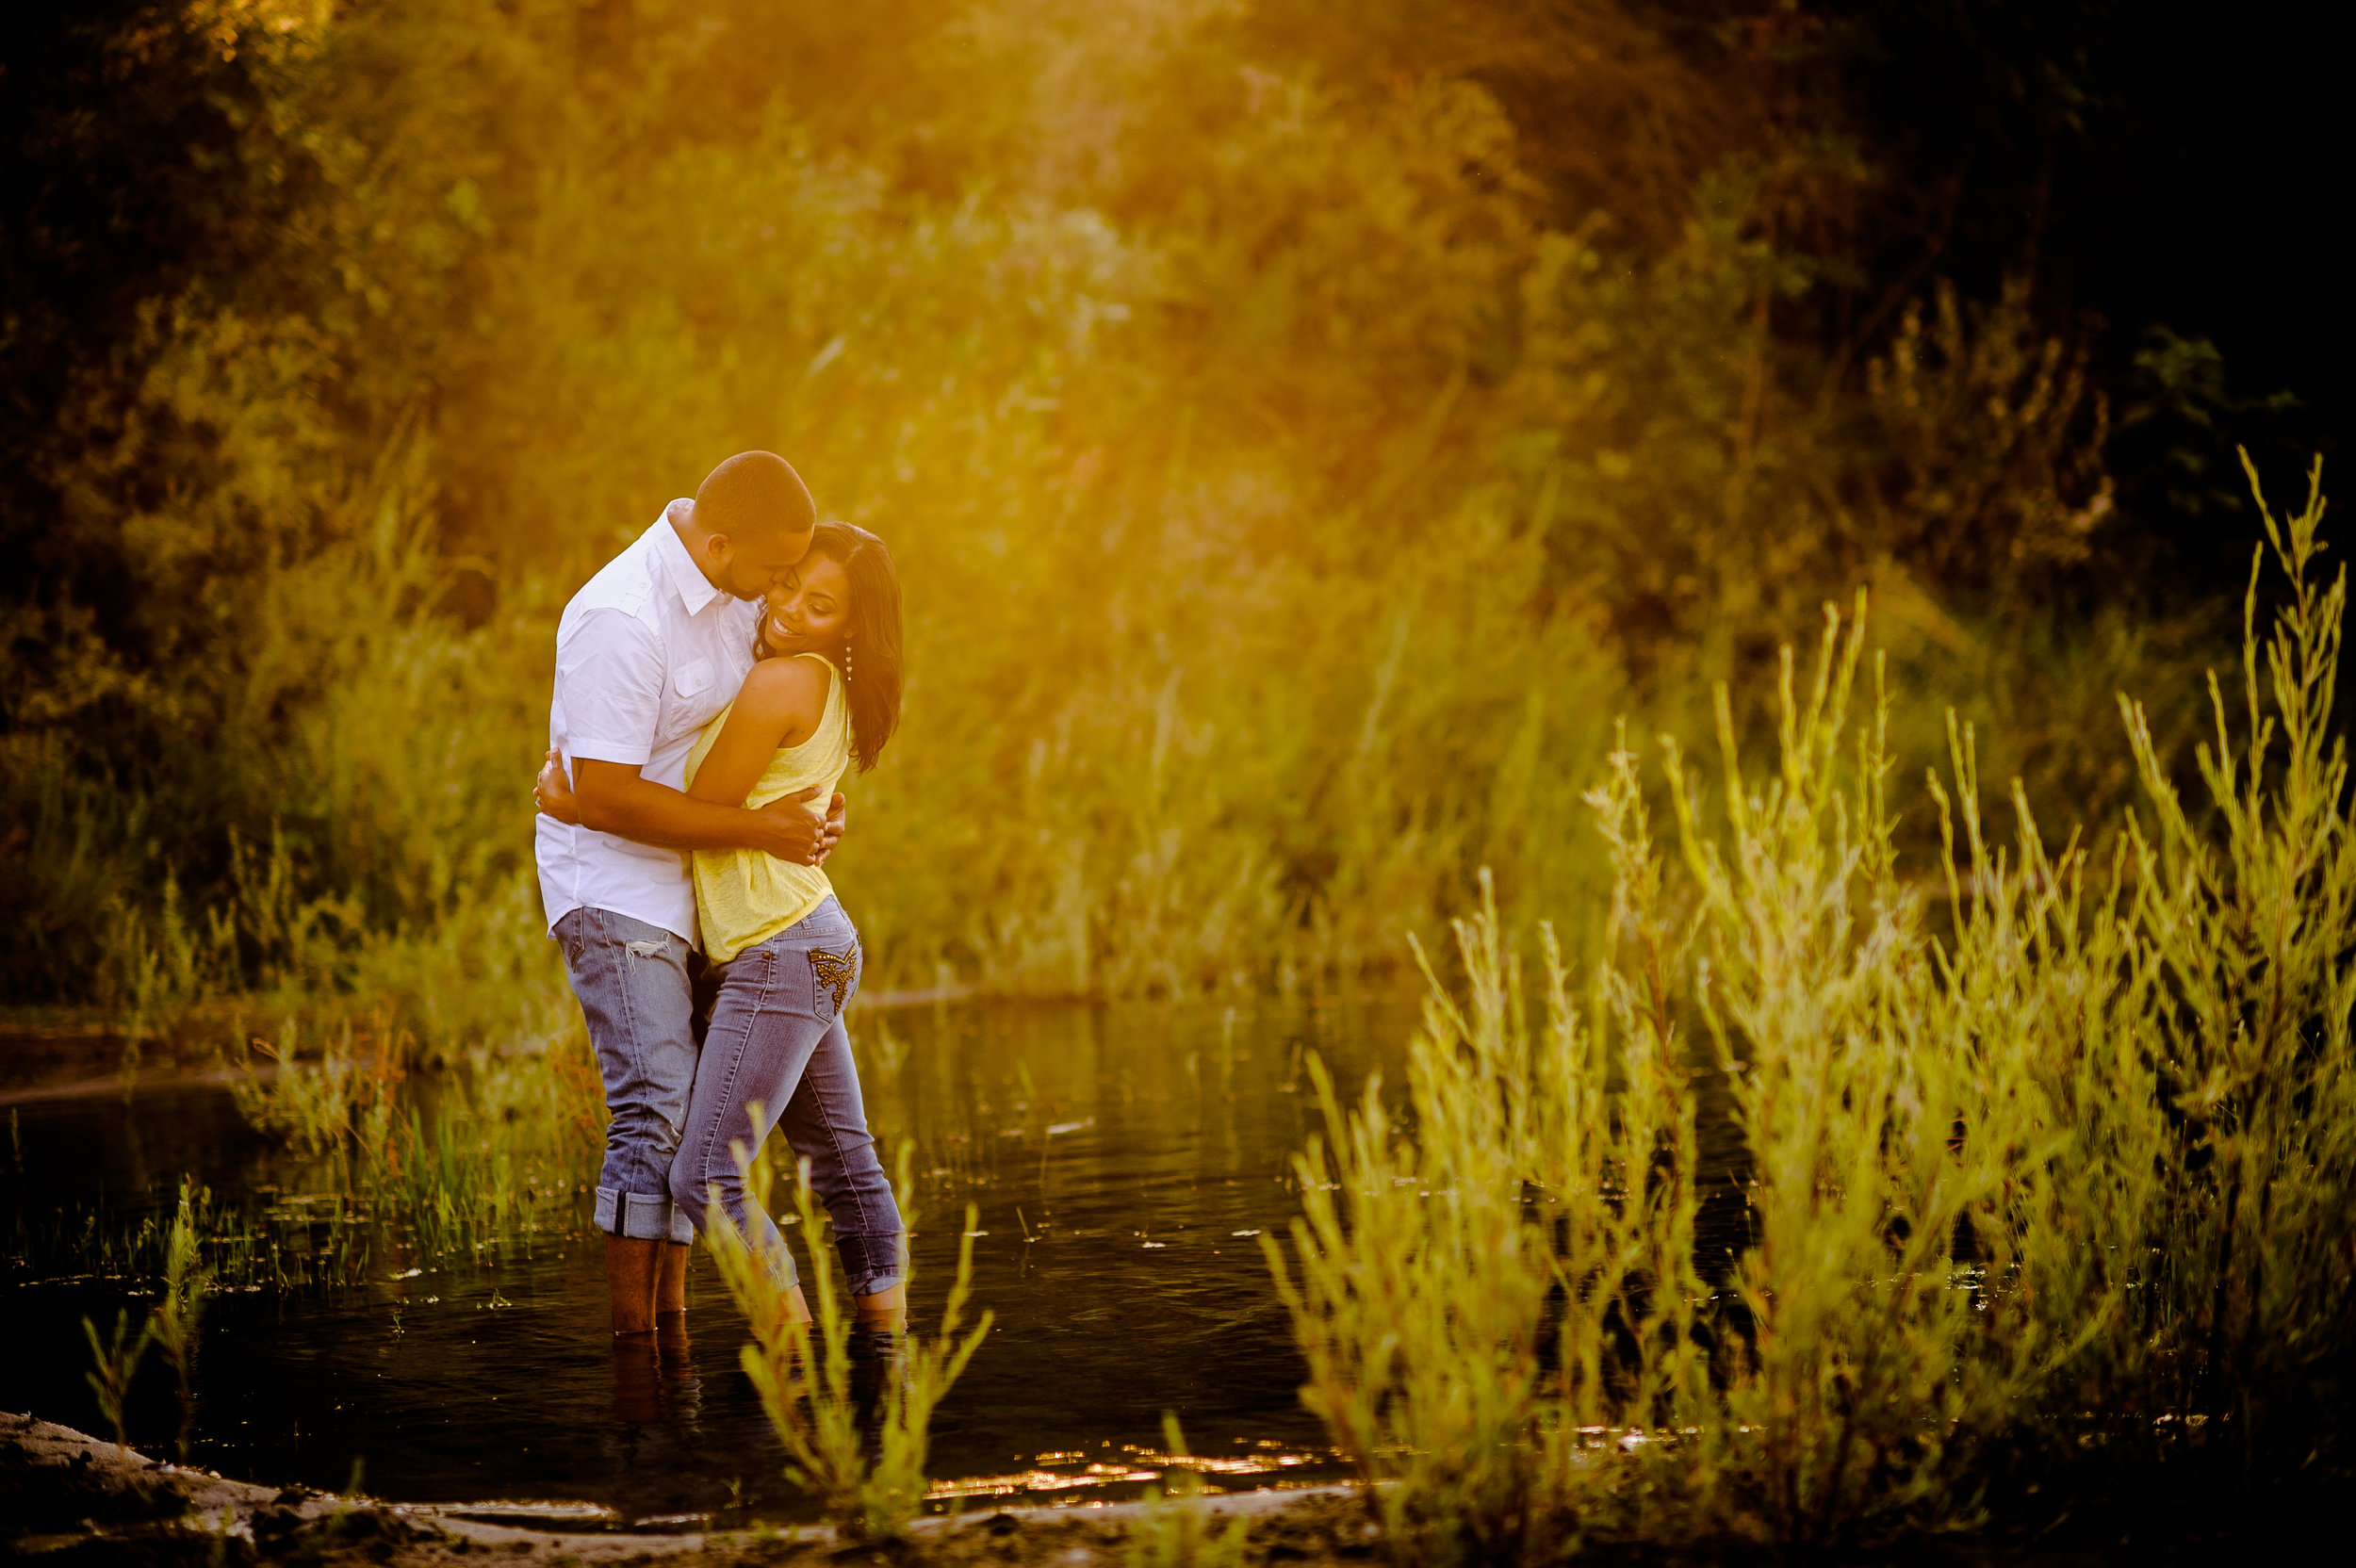 trina-cj-006-sacramento-engagement-wedding-photographer-katherine-nicole-photography.JPG